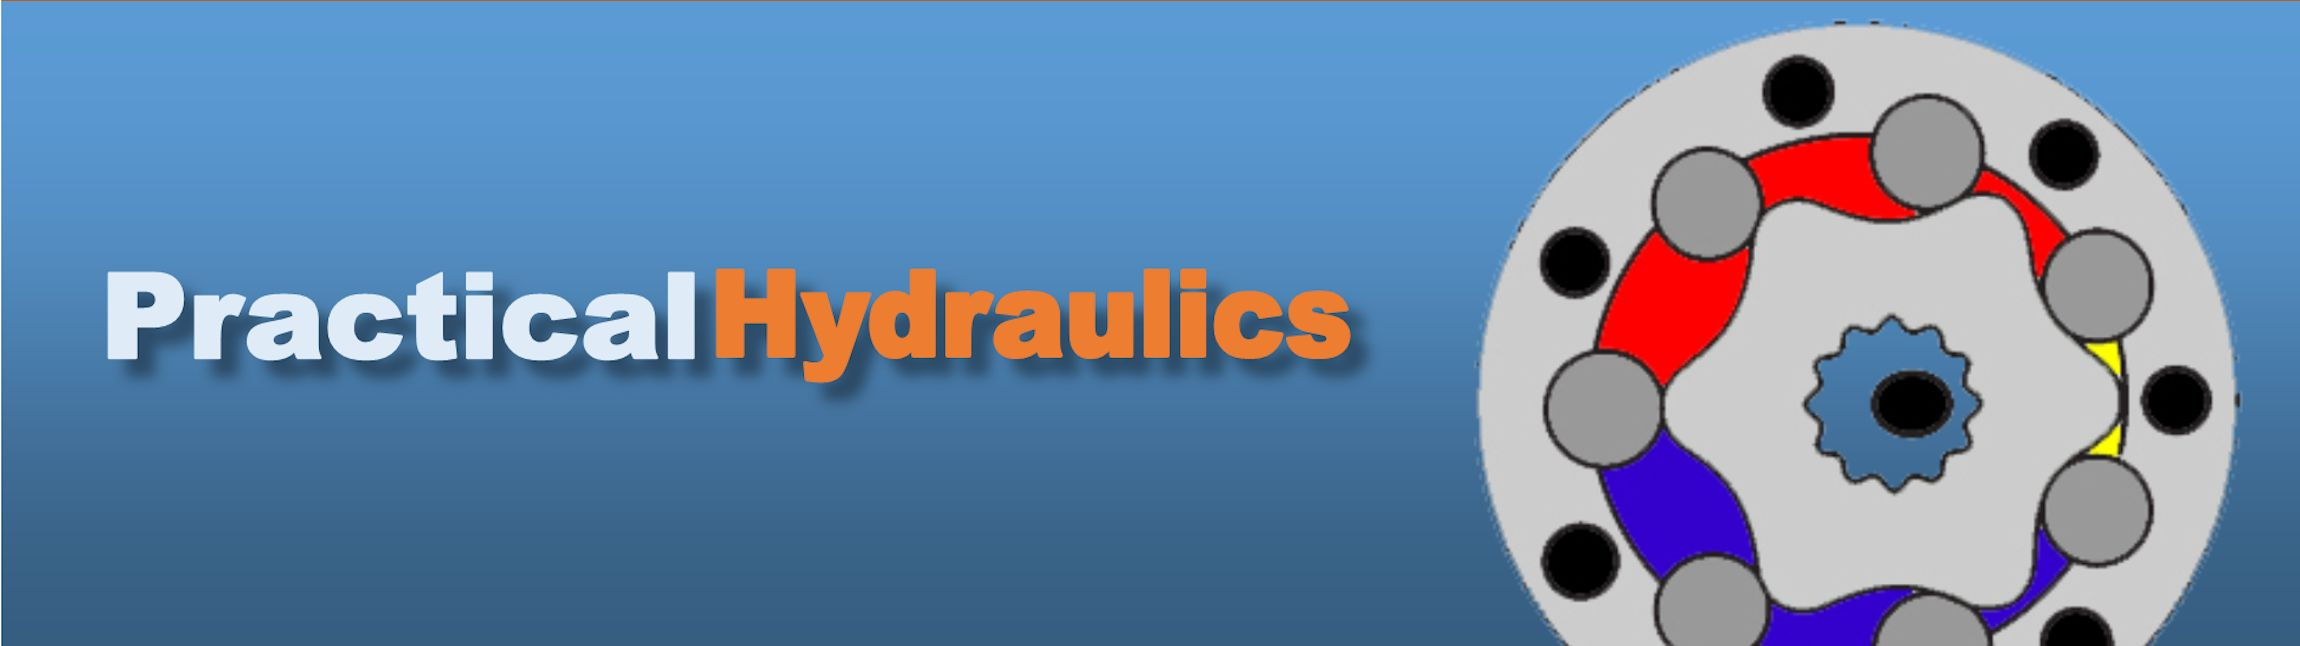 Practical Hydraulics